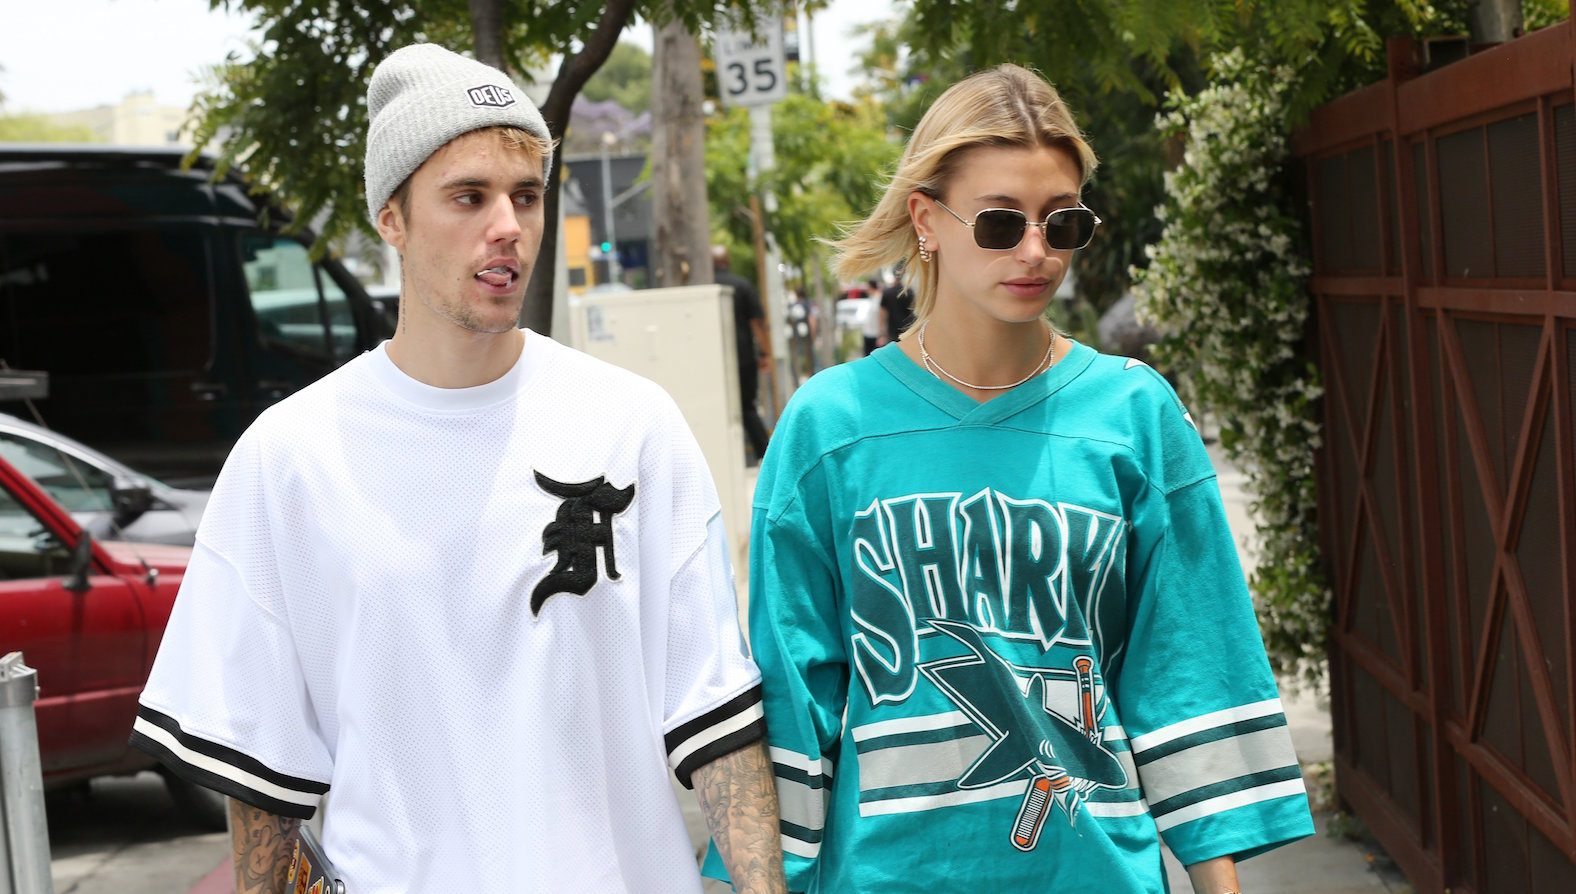 Justin Bieber and Hailey Baldwin Hold Hands While Out in L.A.